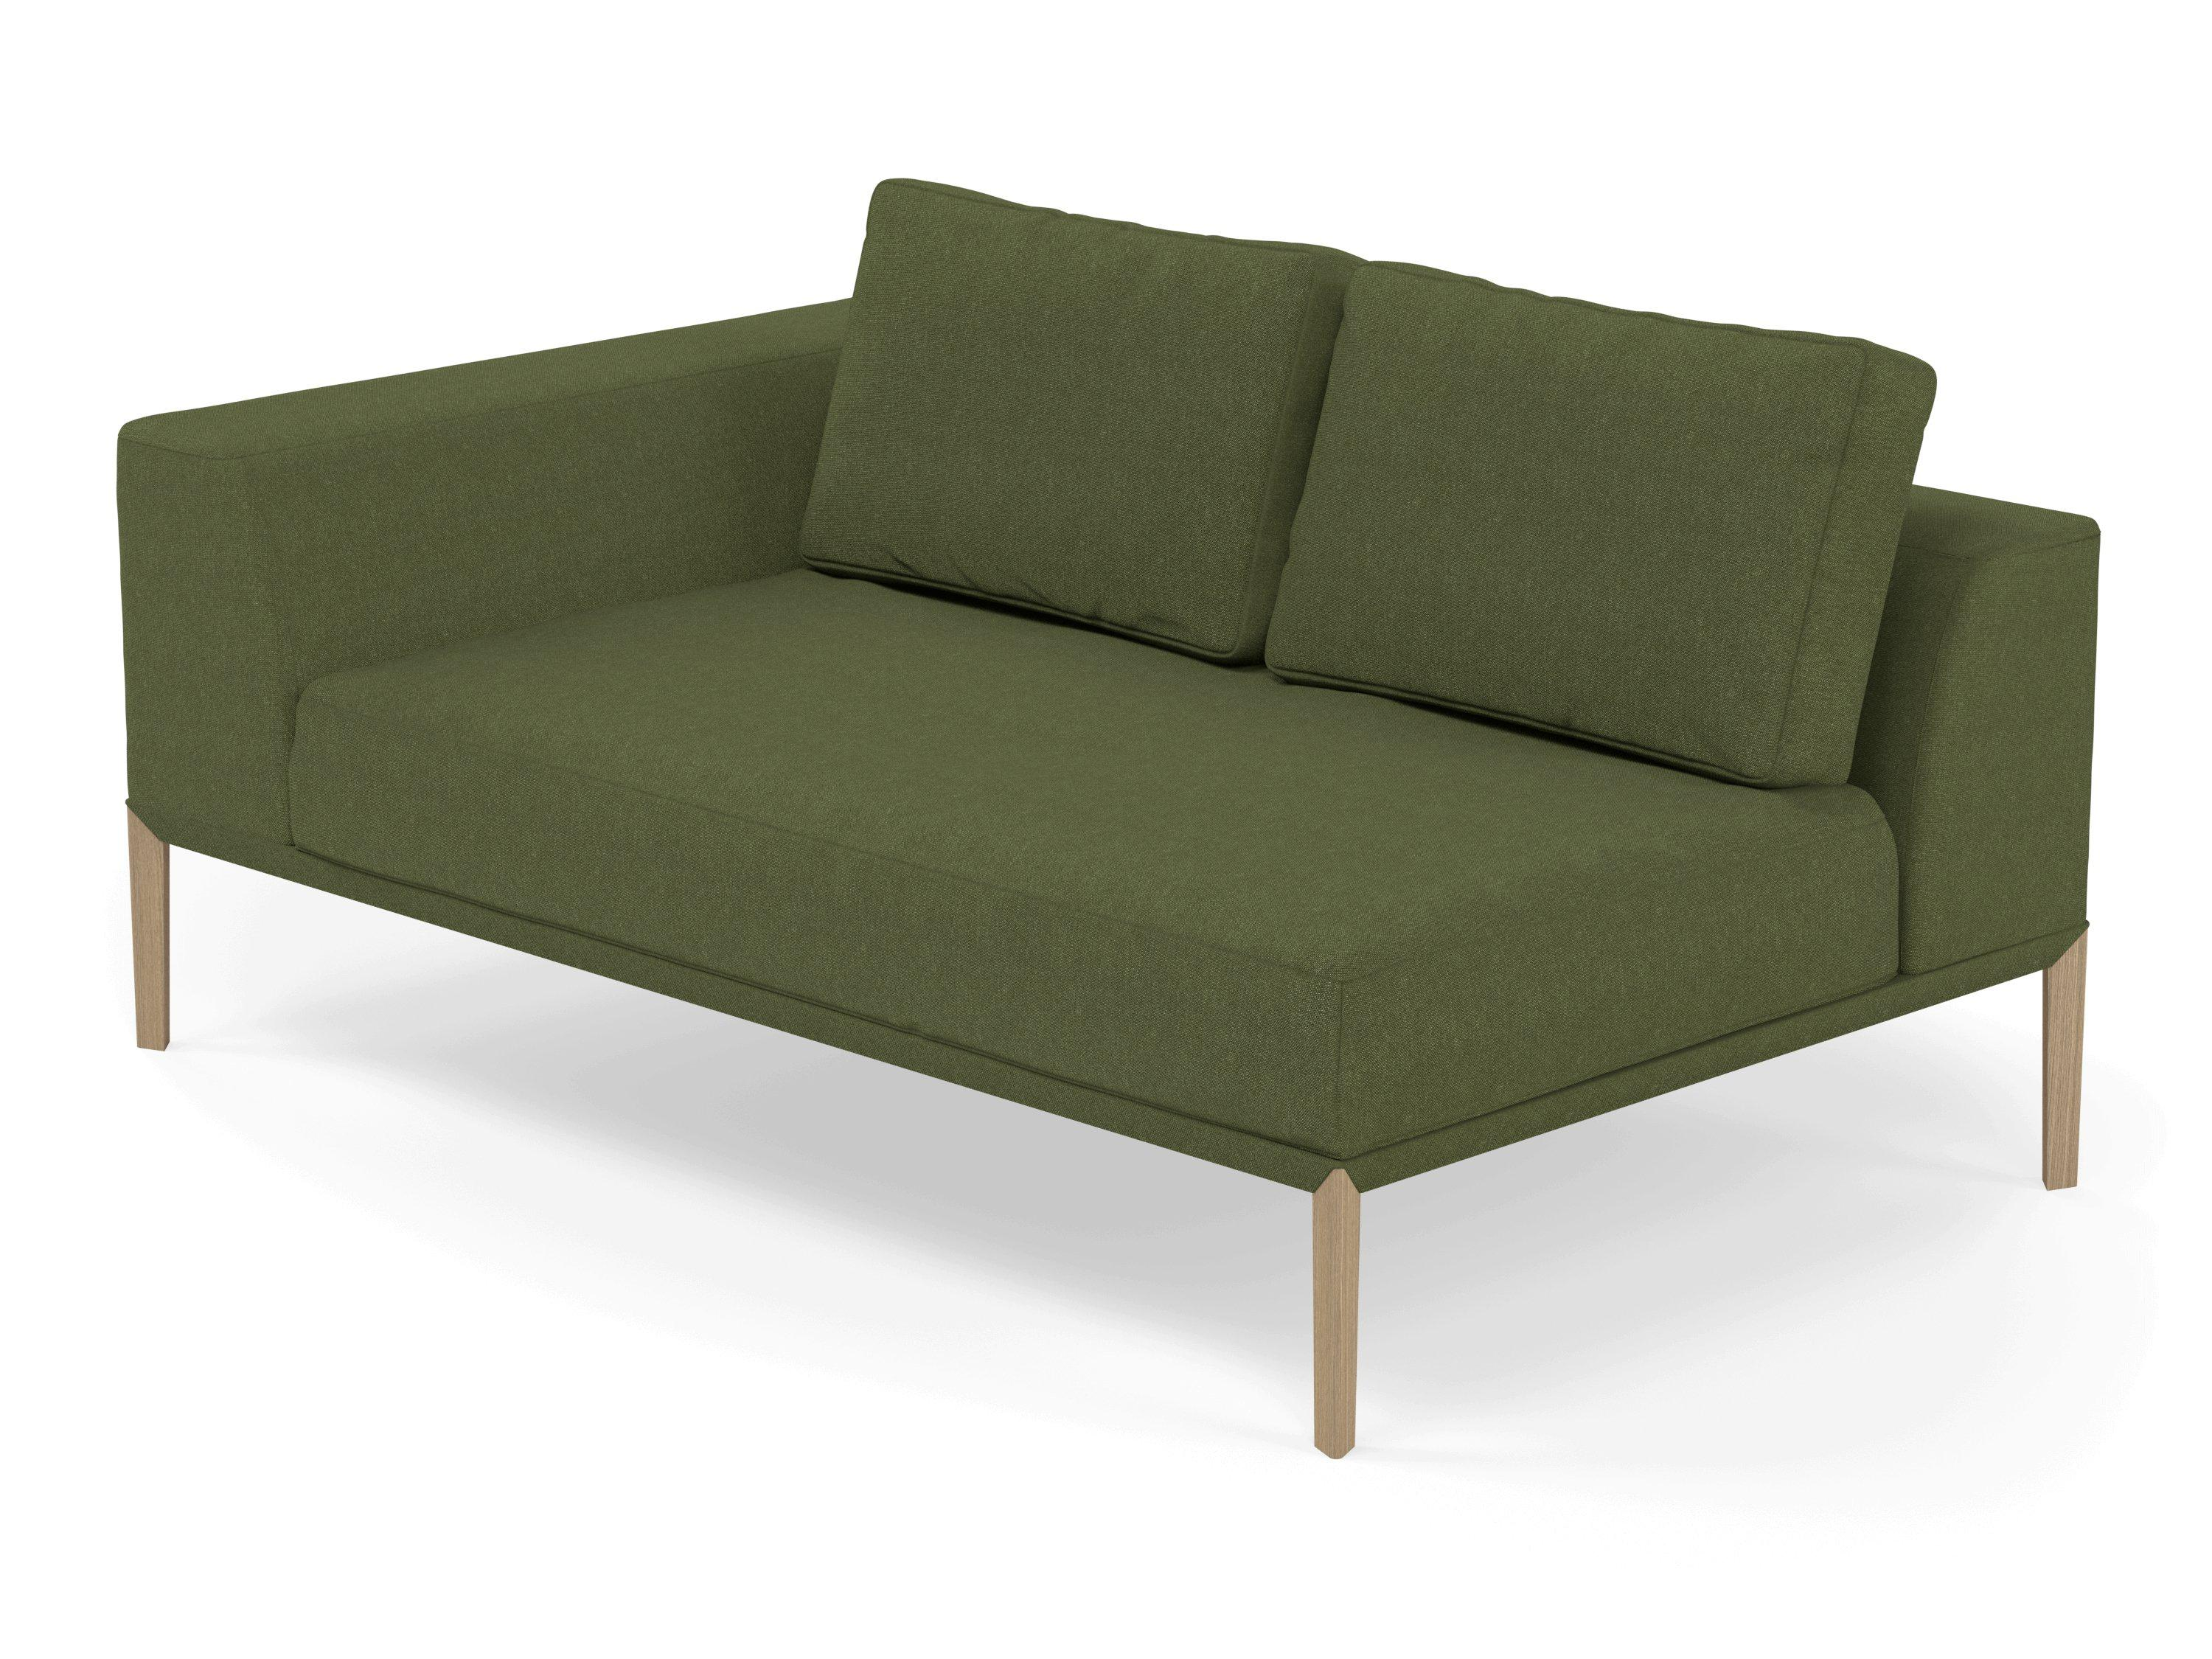 Modern 2 Seater Chaise Lounge Style Sofa with Right Armrest in Seaweed  Green Fabric